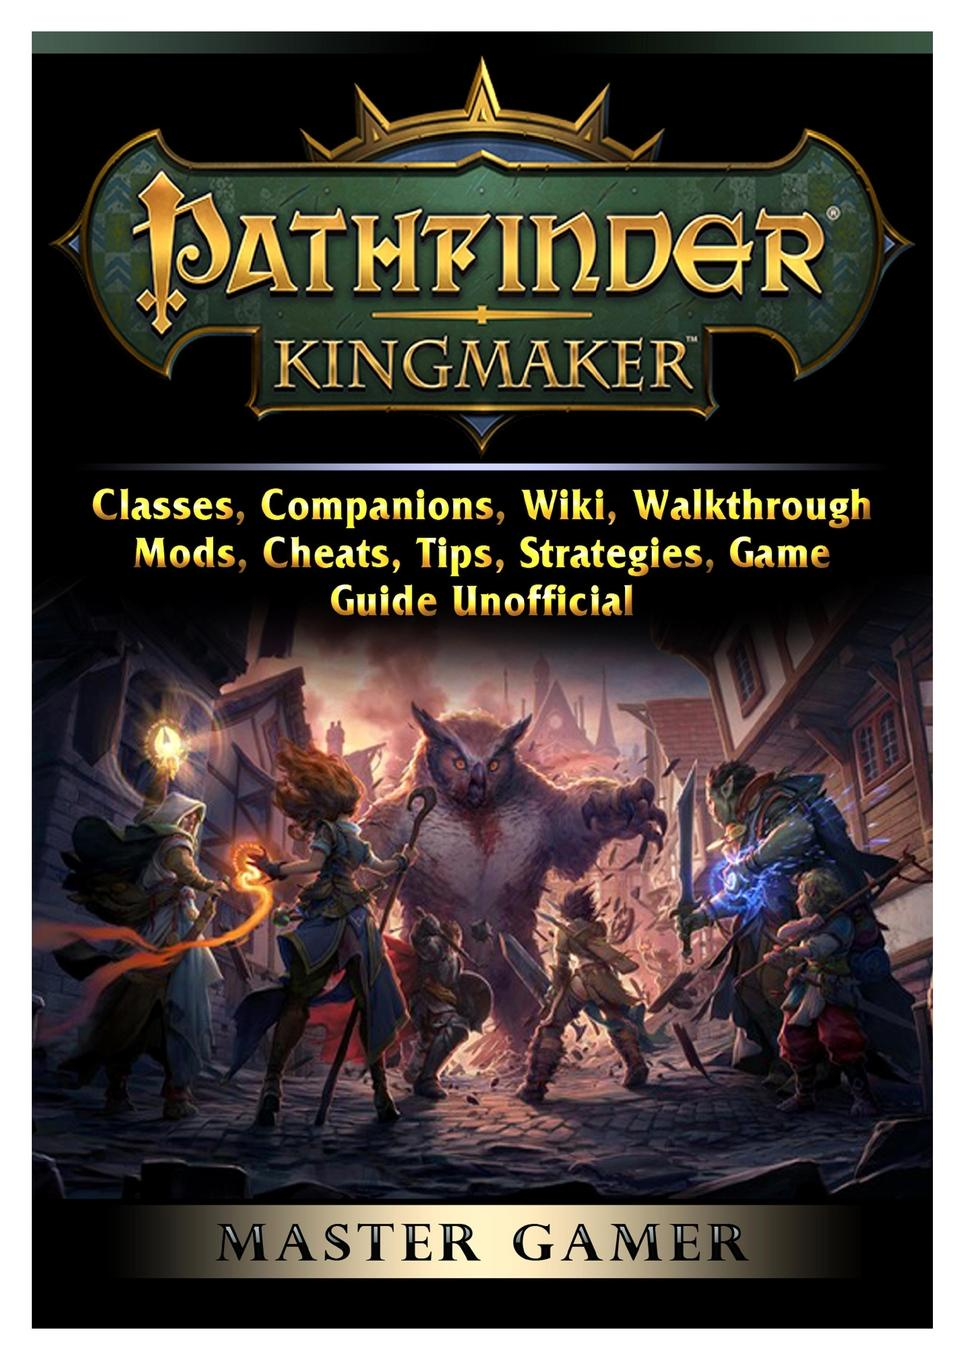 где купить Master Gamer Pathfinder Kingmaker, Classes, Companions, Wiki, Walkthrough, Mods, Cheats, Tips, Strategies, Game Guide Unofficial по лучшей цене